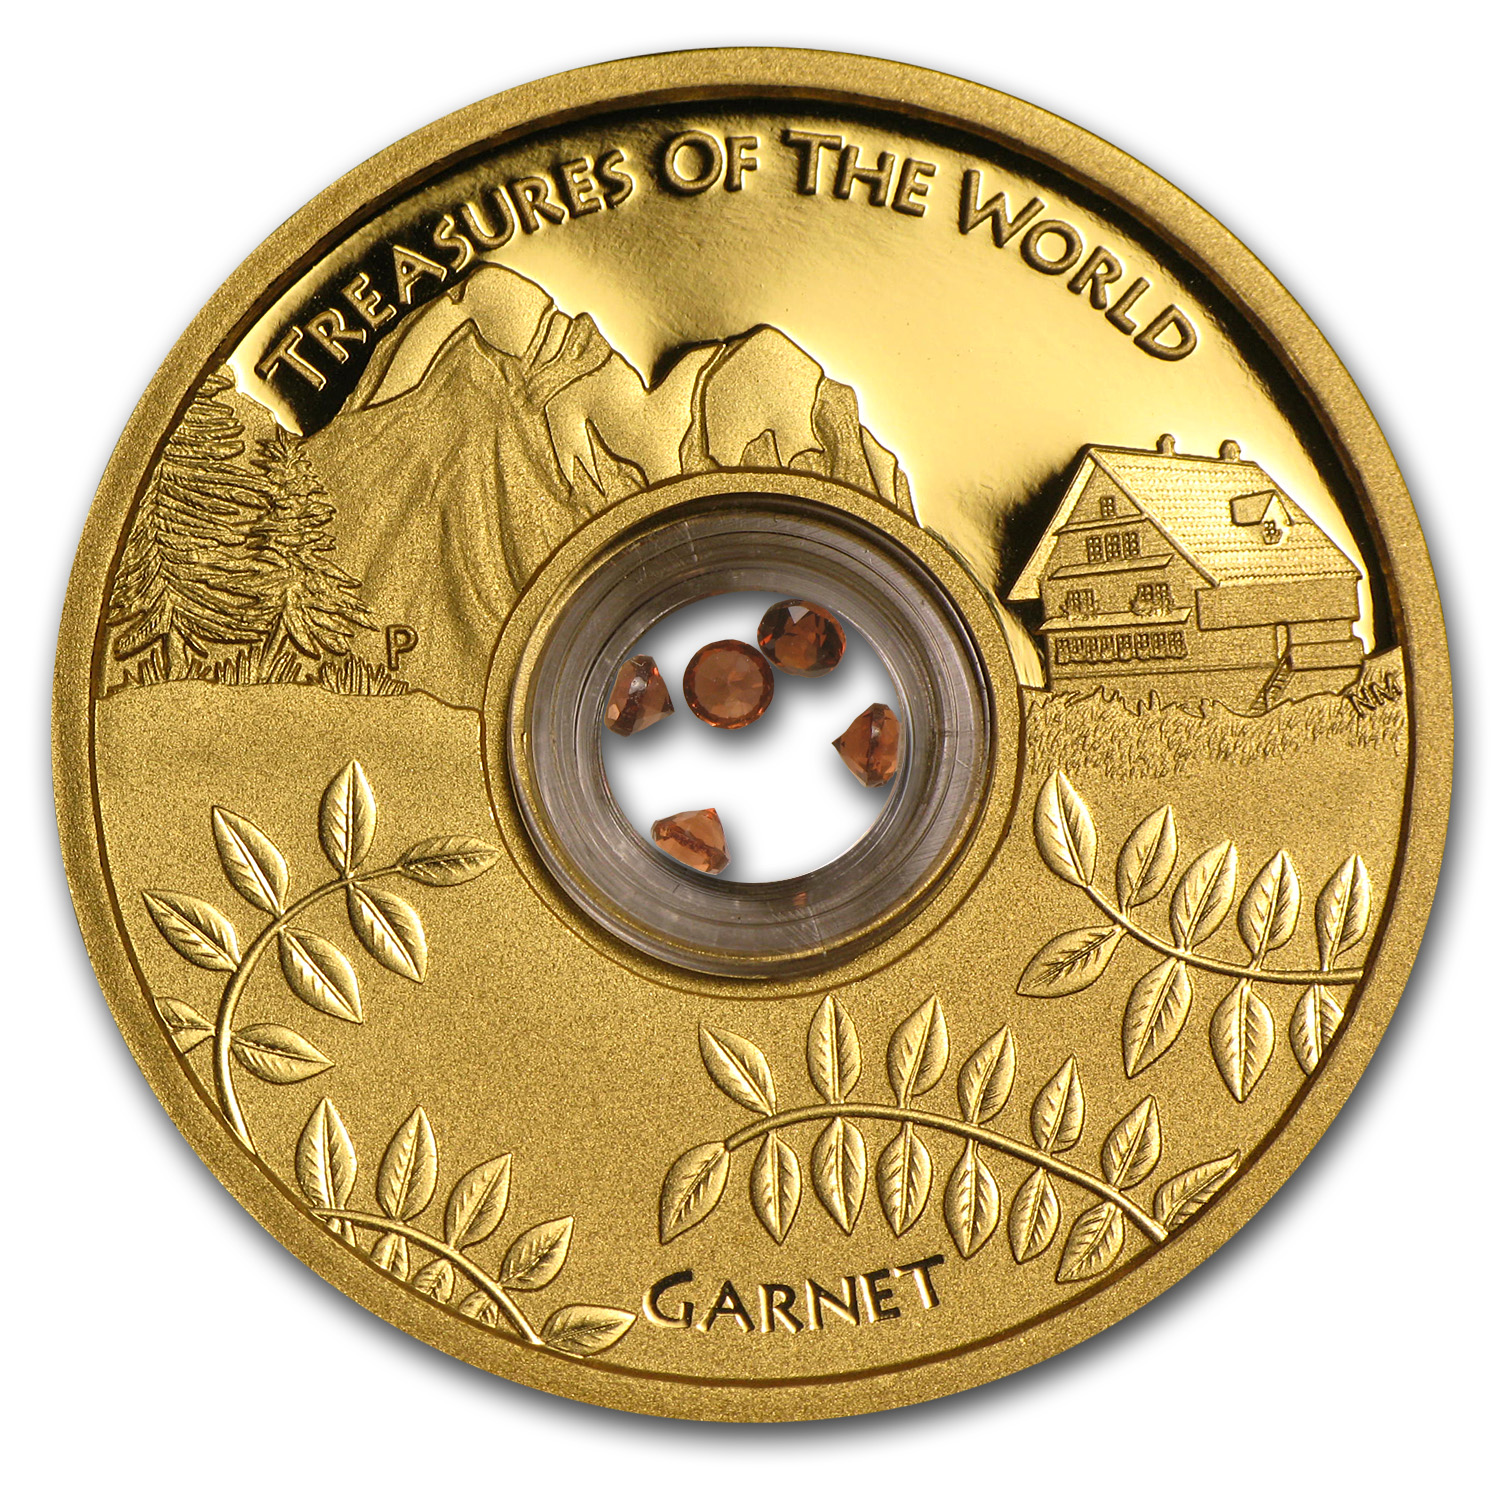 2013 1 oz Gold Treasures of the World Europe Locket (w/Garnet)